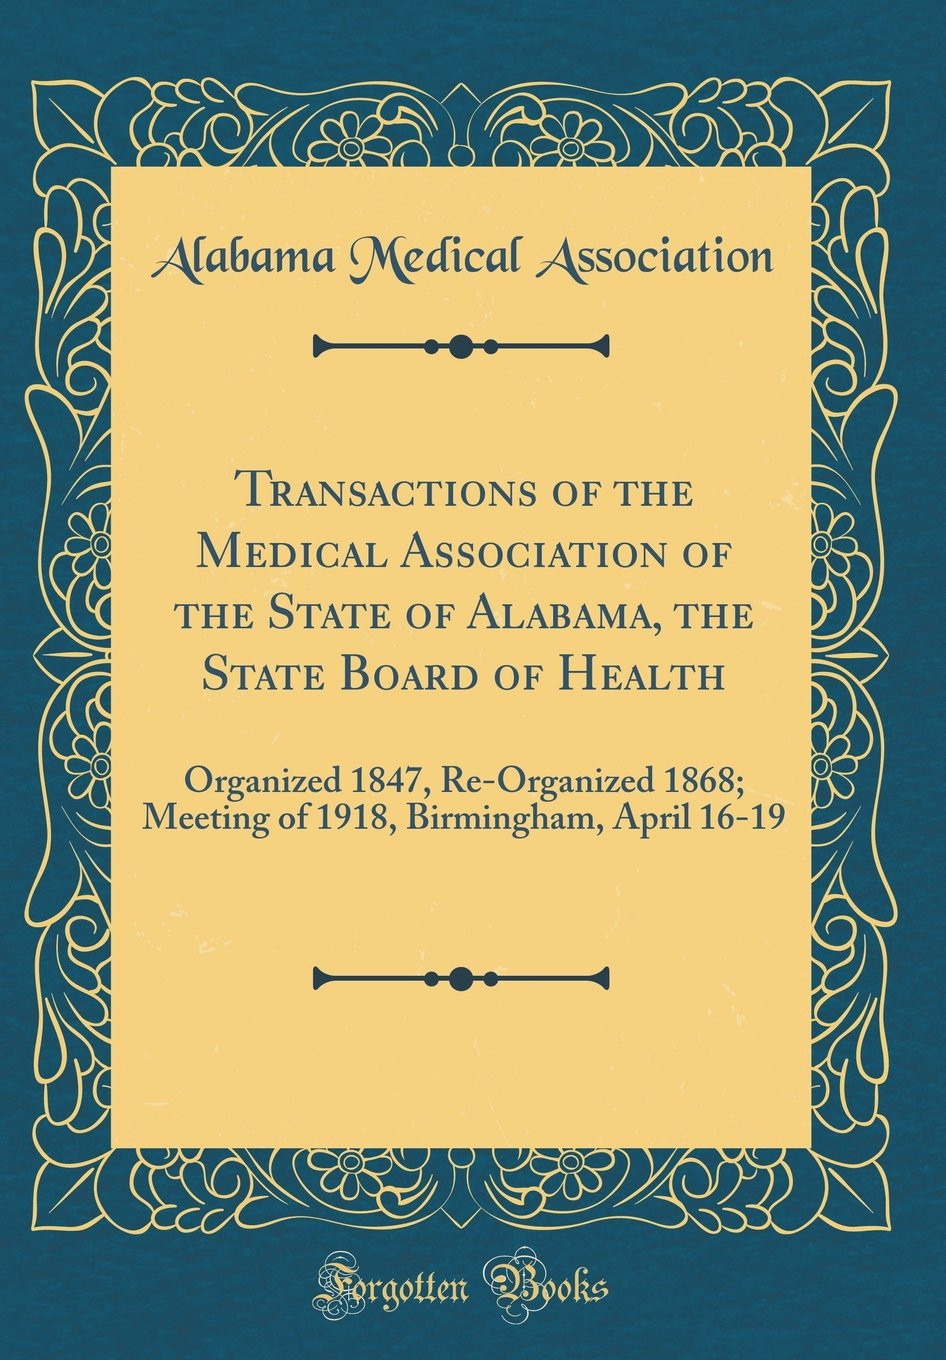 Download Transactions of the Medical Association of the State of Alabama, the State Board of Health: Organized 1847, Re-Organized 1868; Meeting of 1918, Birmingham, April 16-19 (Classic Reprint) ebook